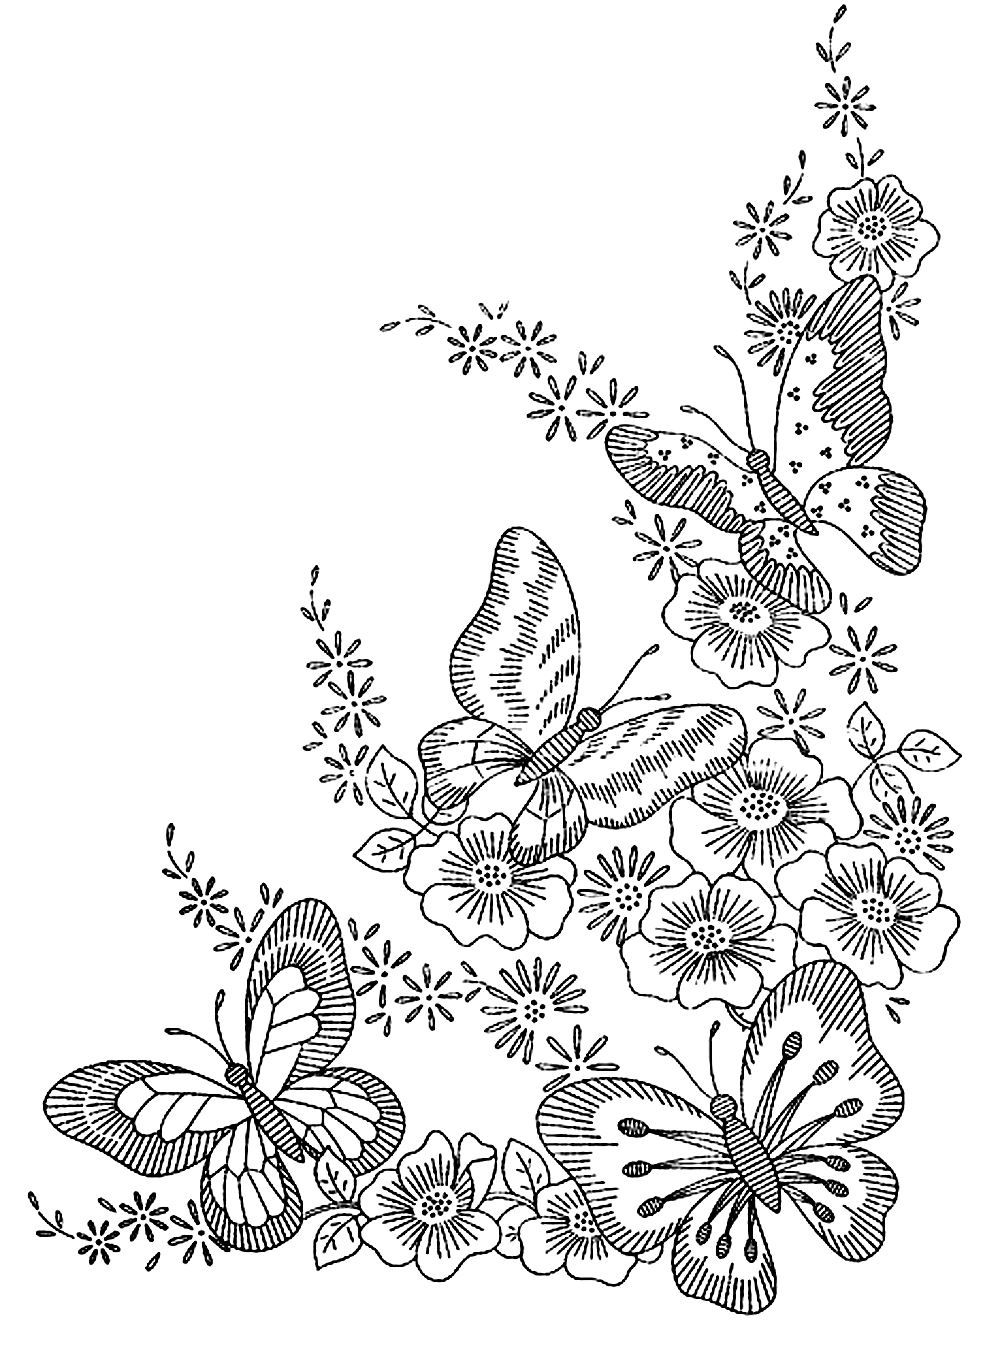 To Print This Free Coloring Page â«coloring-adult-difficult